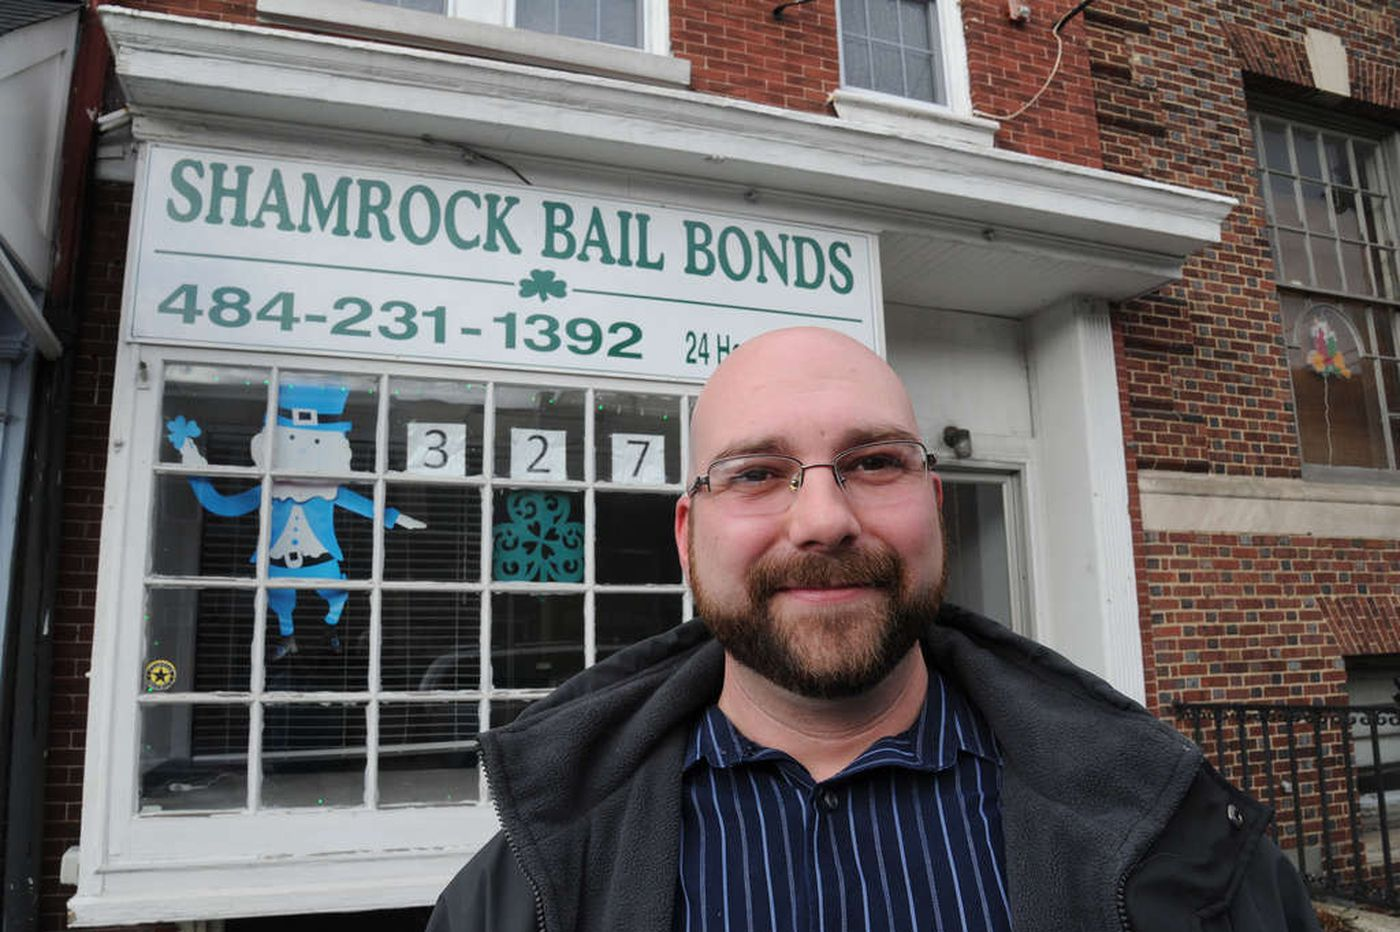 All they want for Christmas is ... Bail